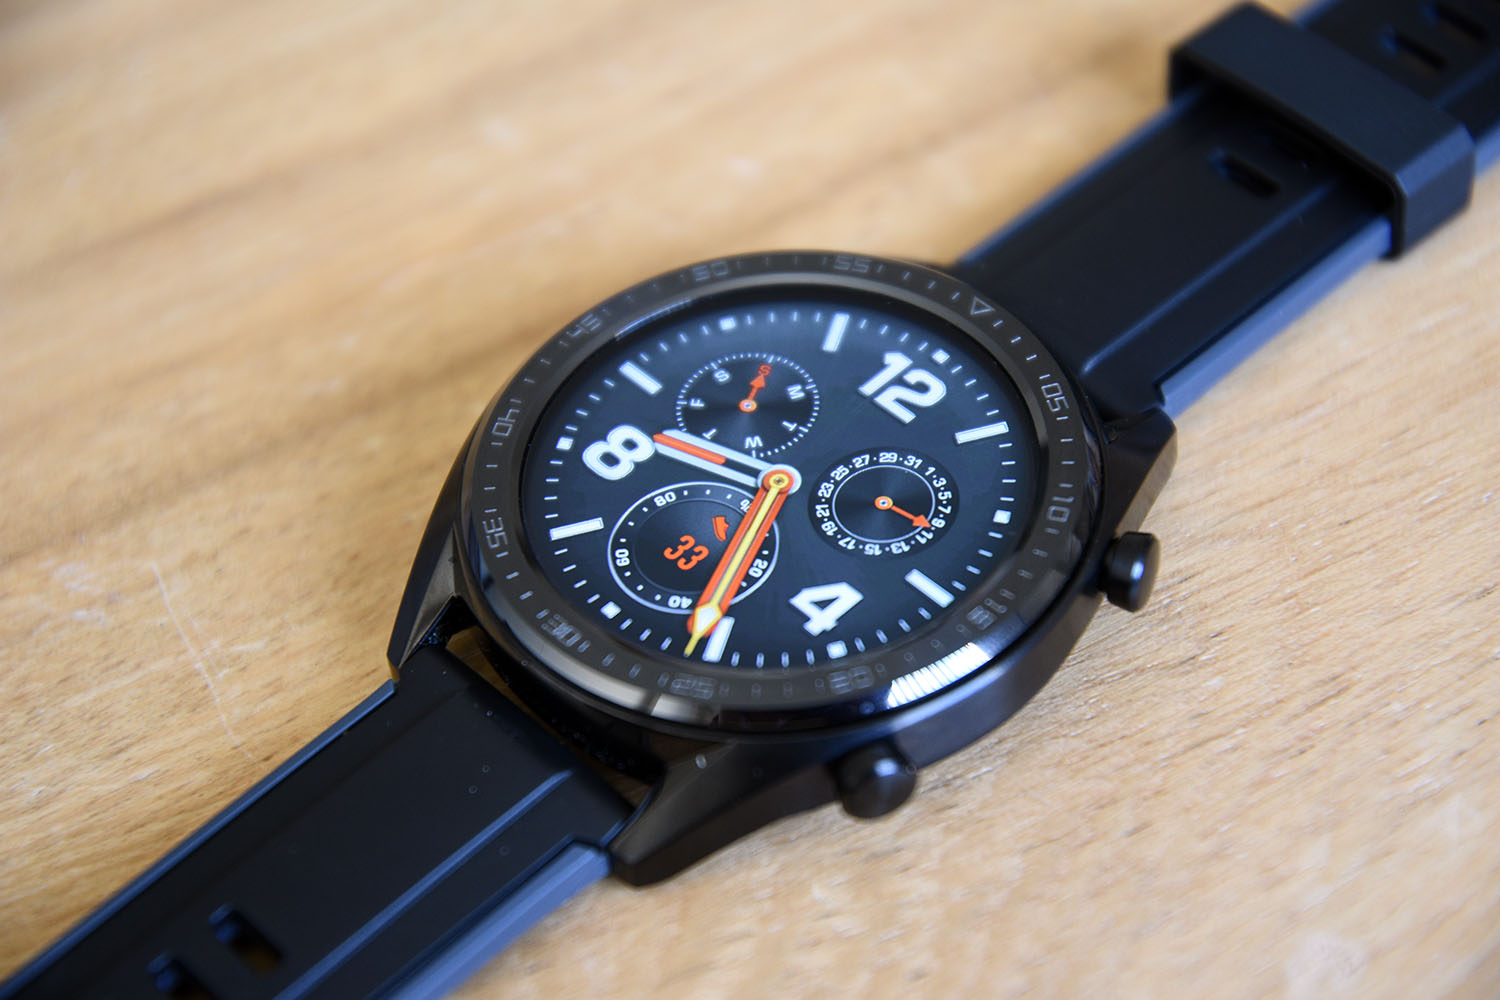 QnA VBage Huawei Watch GT available for pre-order in the US, ships next week